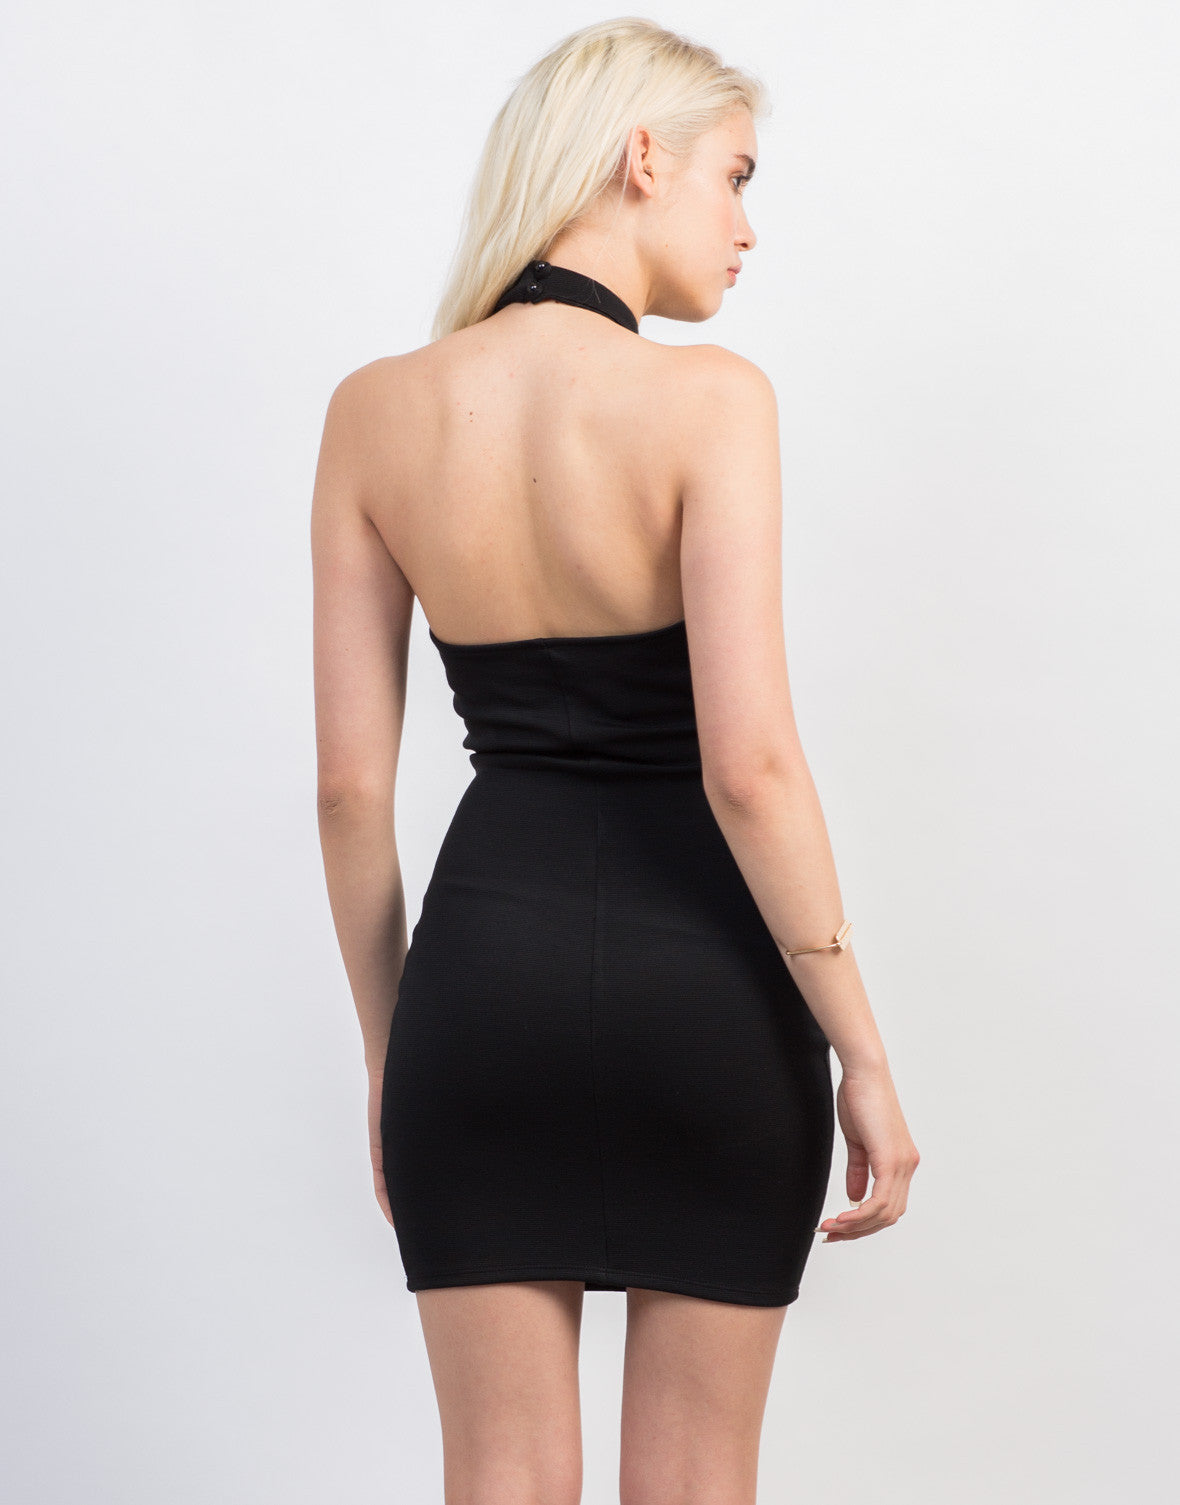 Back View of Choker Halter Dress